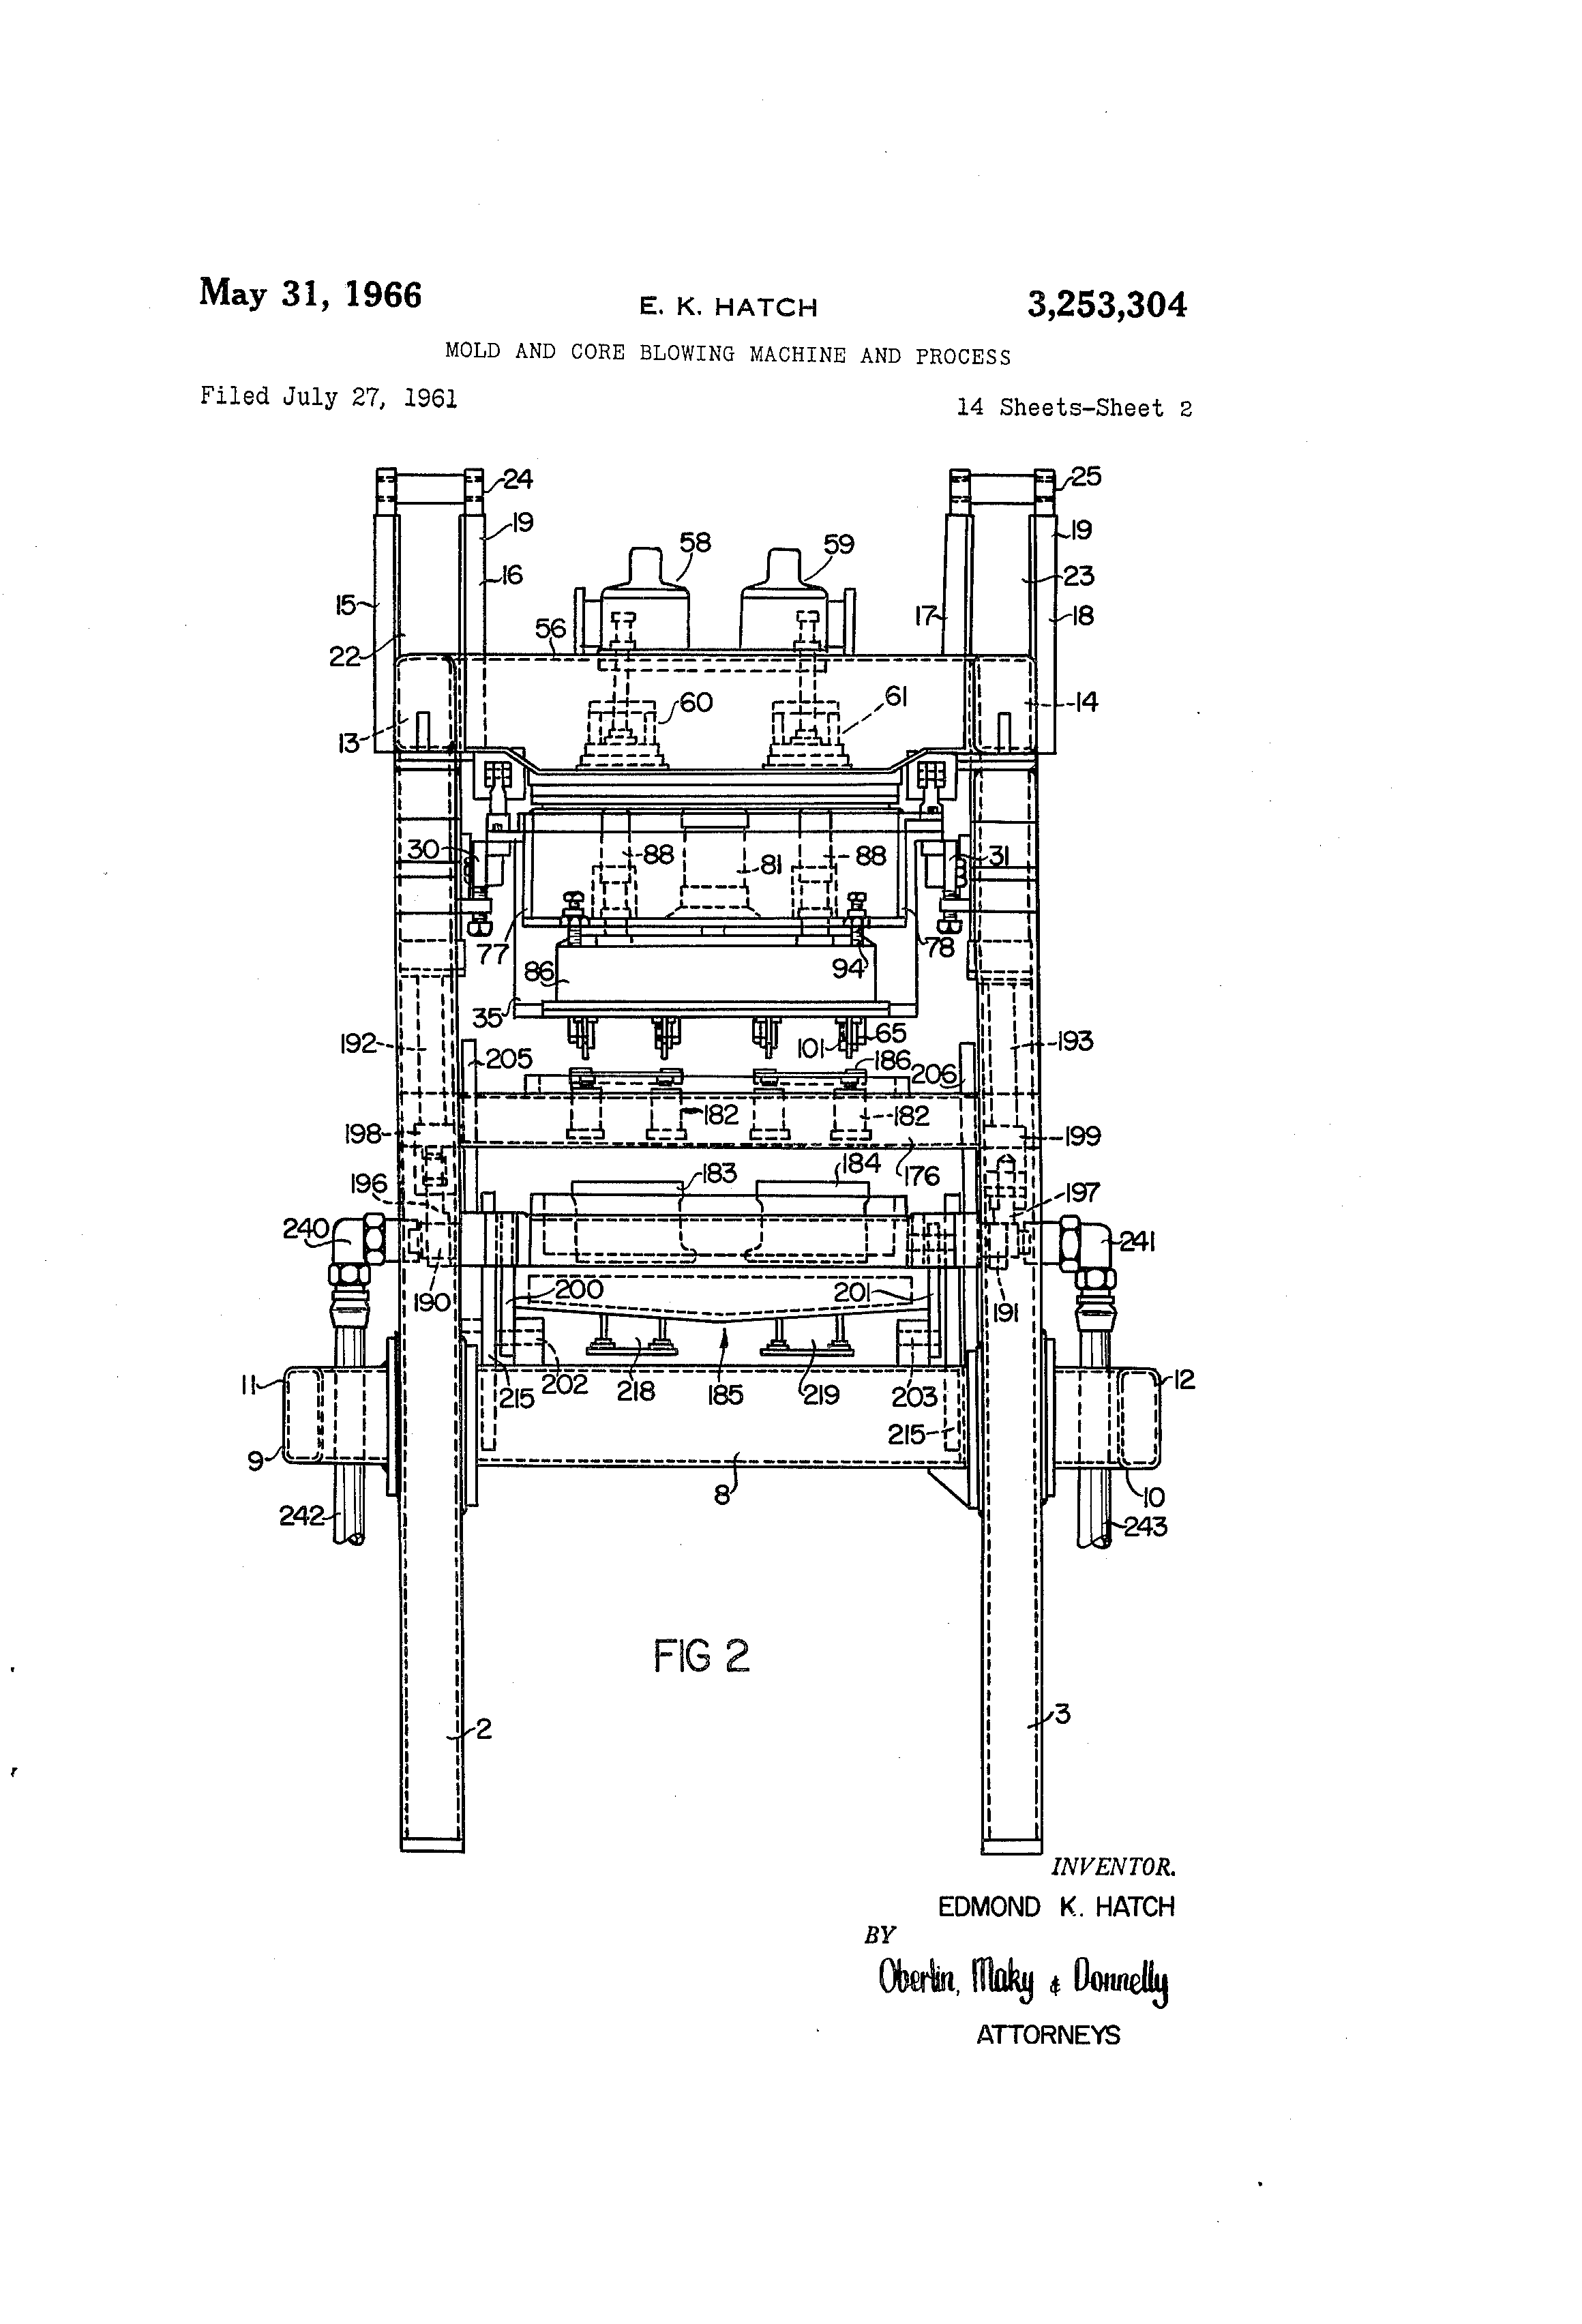 US3253304 1 patent us3253304 mold and core blowing machine and process  at reclaimingppi.co